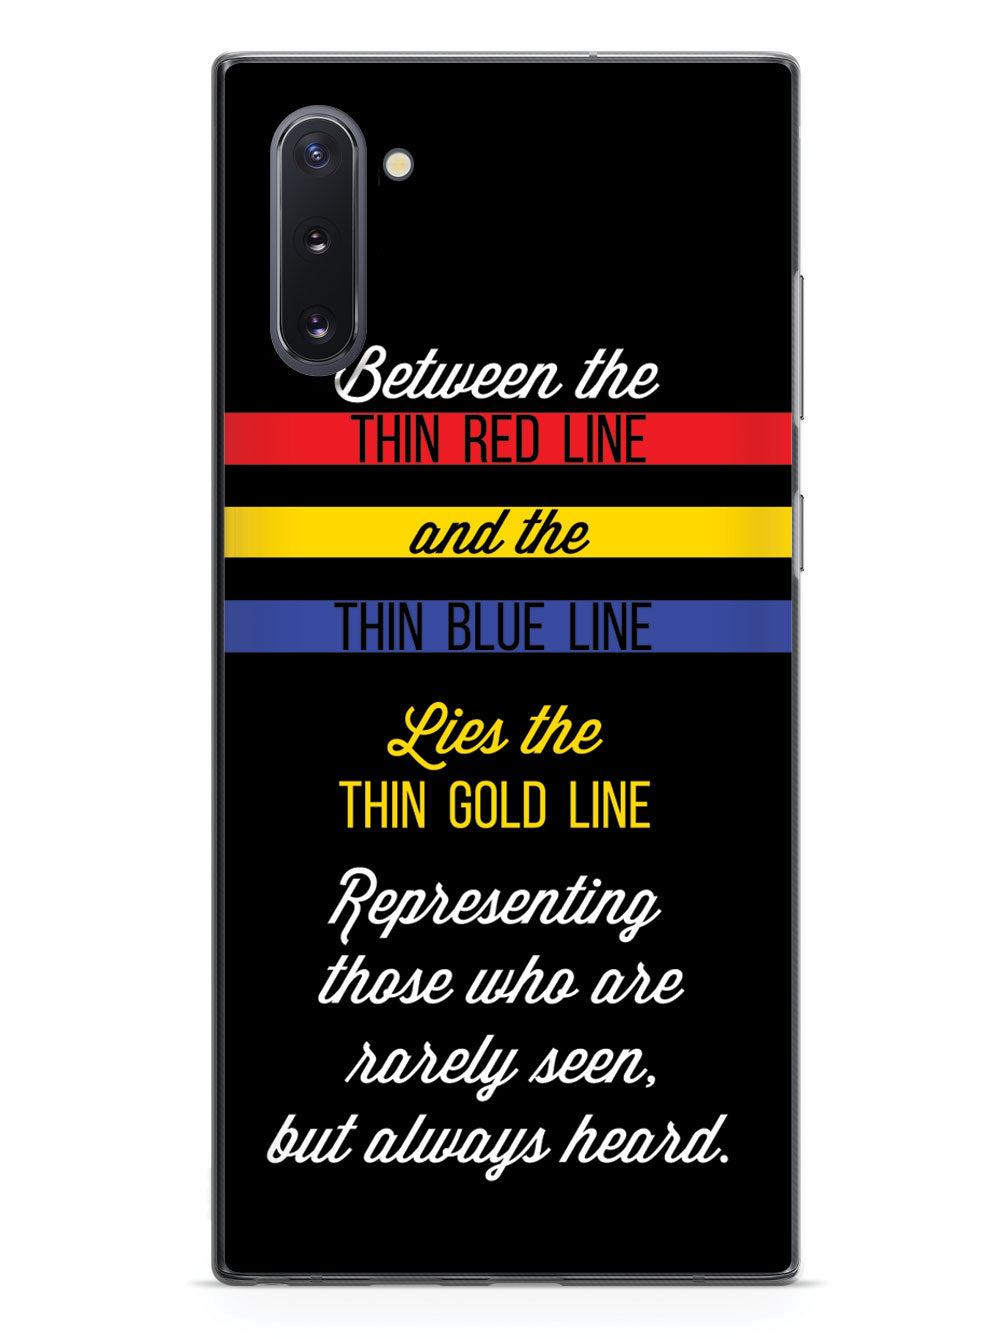 Between Red and Blue Lies Gold - 911 Dispatch Case